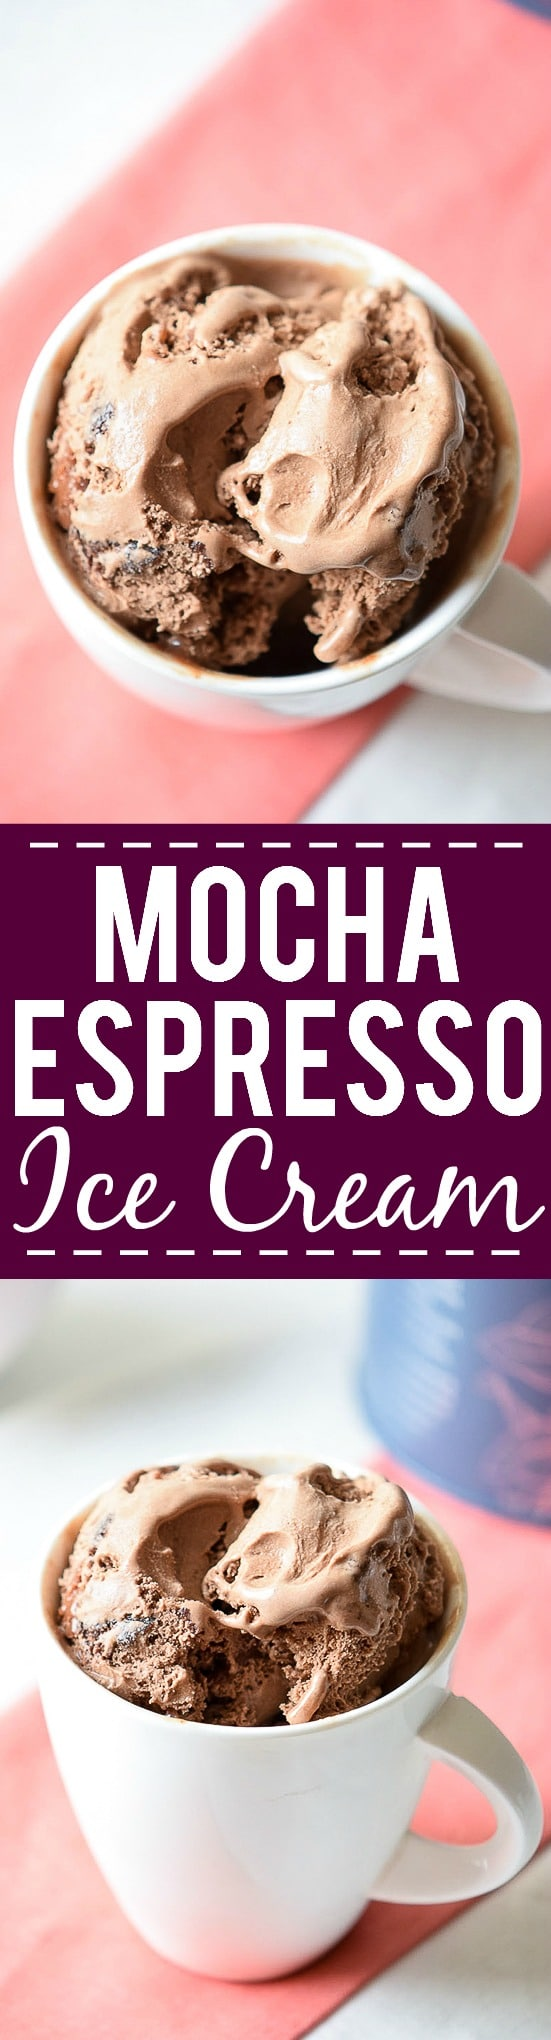 Mocha Espresso Ice Cream Recipe -You won't believe how easy it is to make your own homemade, no churn, rich and creamy Mocha Espresso Ice Cream with simple ingredients! Perfect for coffee and ice cream lovers! Love this easy no churn ice cream recipe!